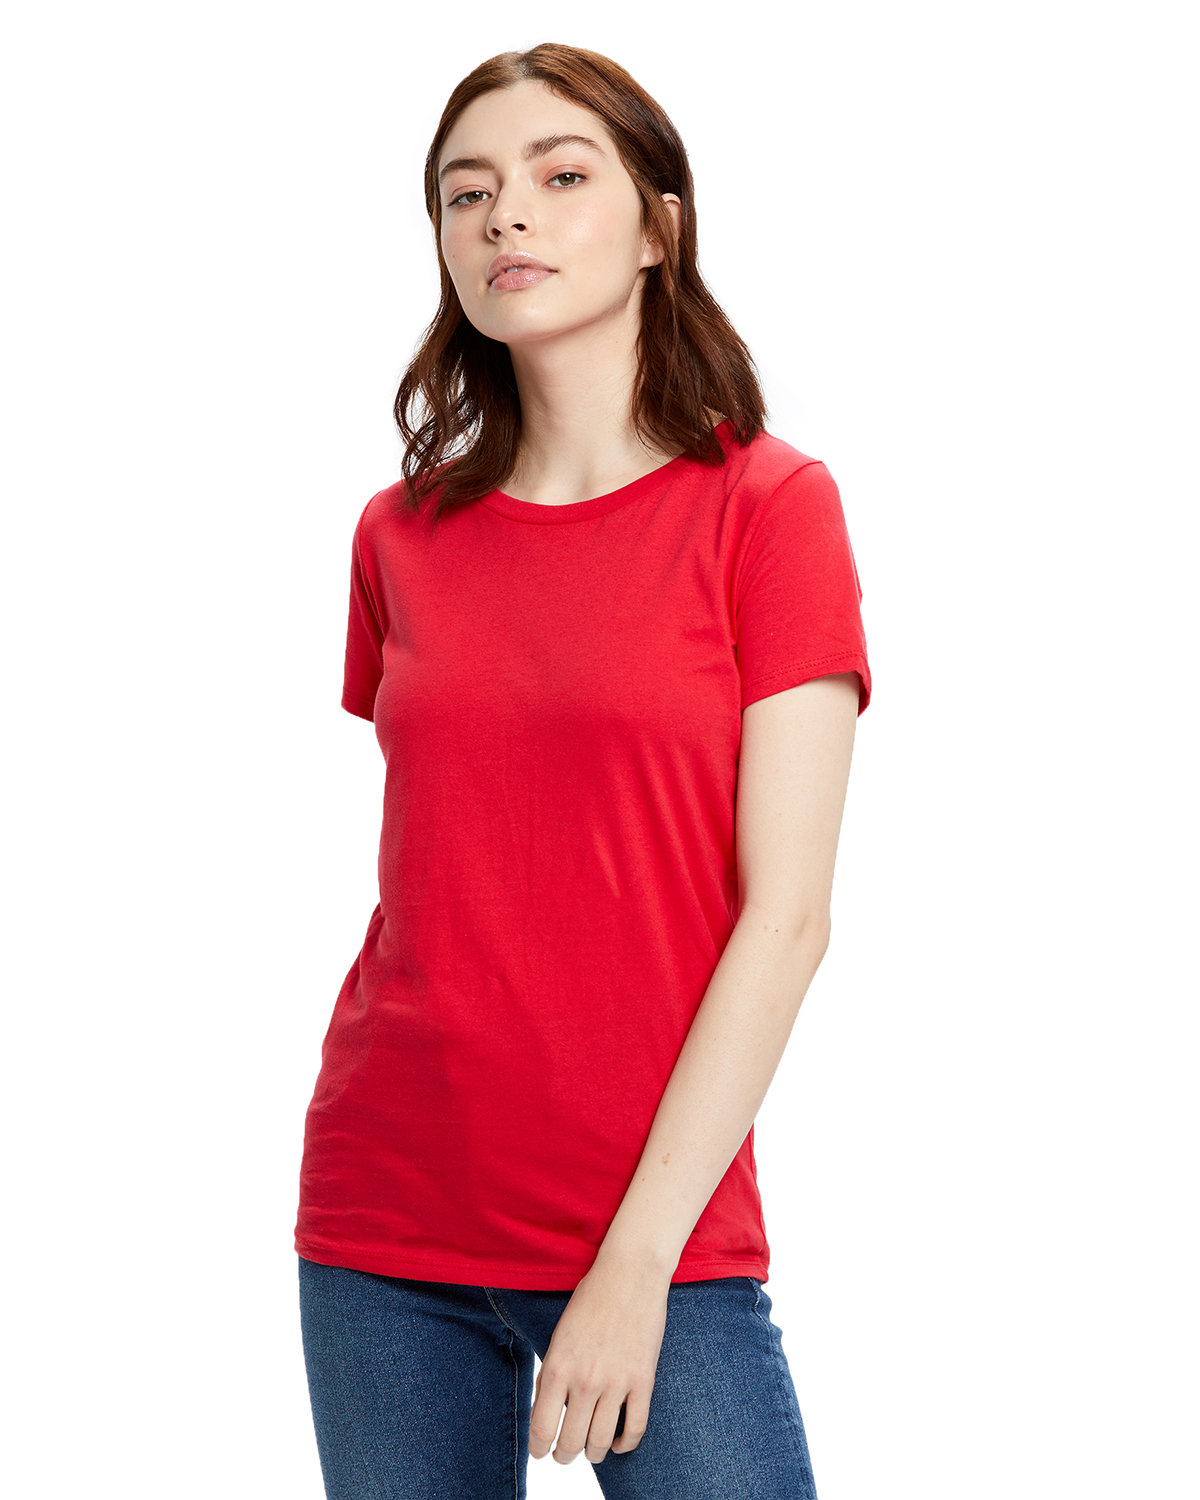 US Blanks Ladies' Made in USA Short Sleeve Crew T-Shirt RED